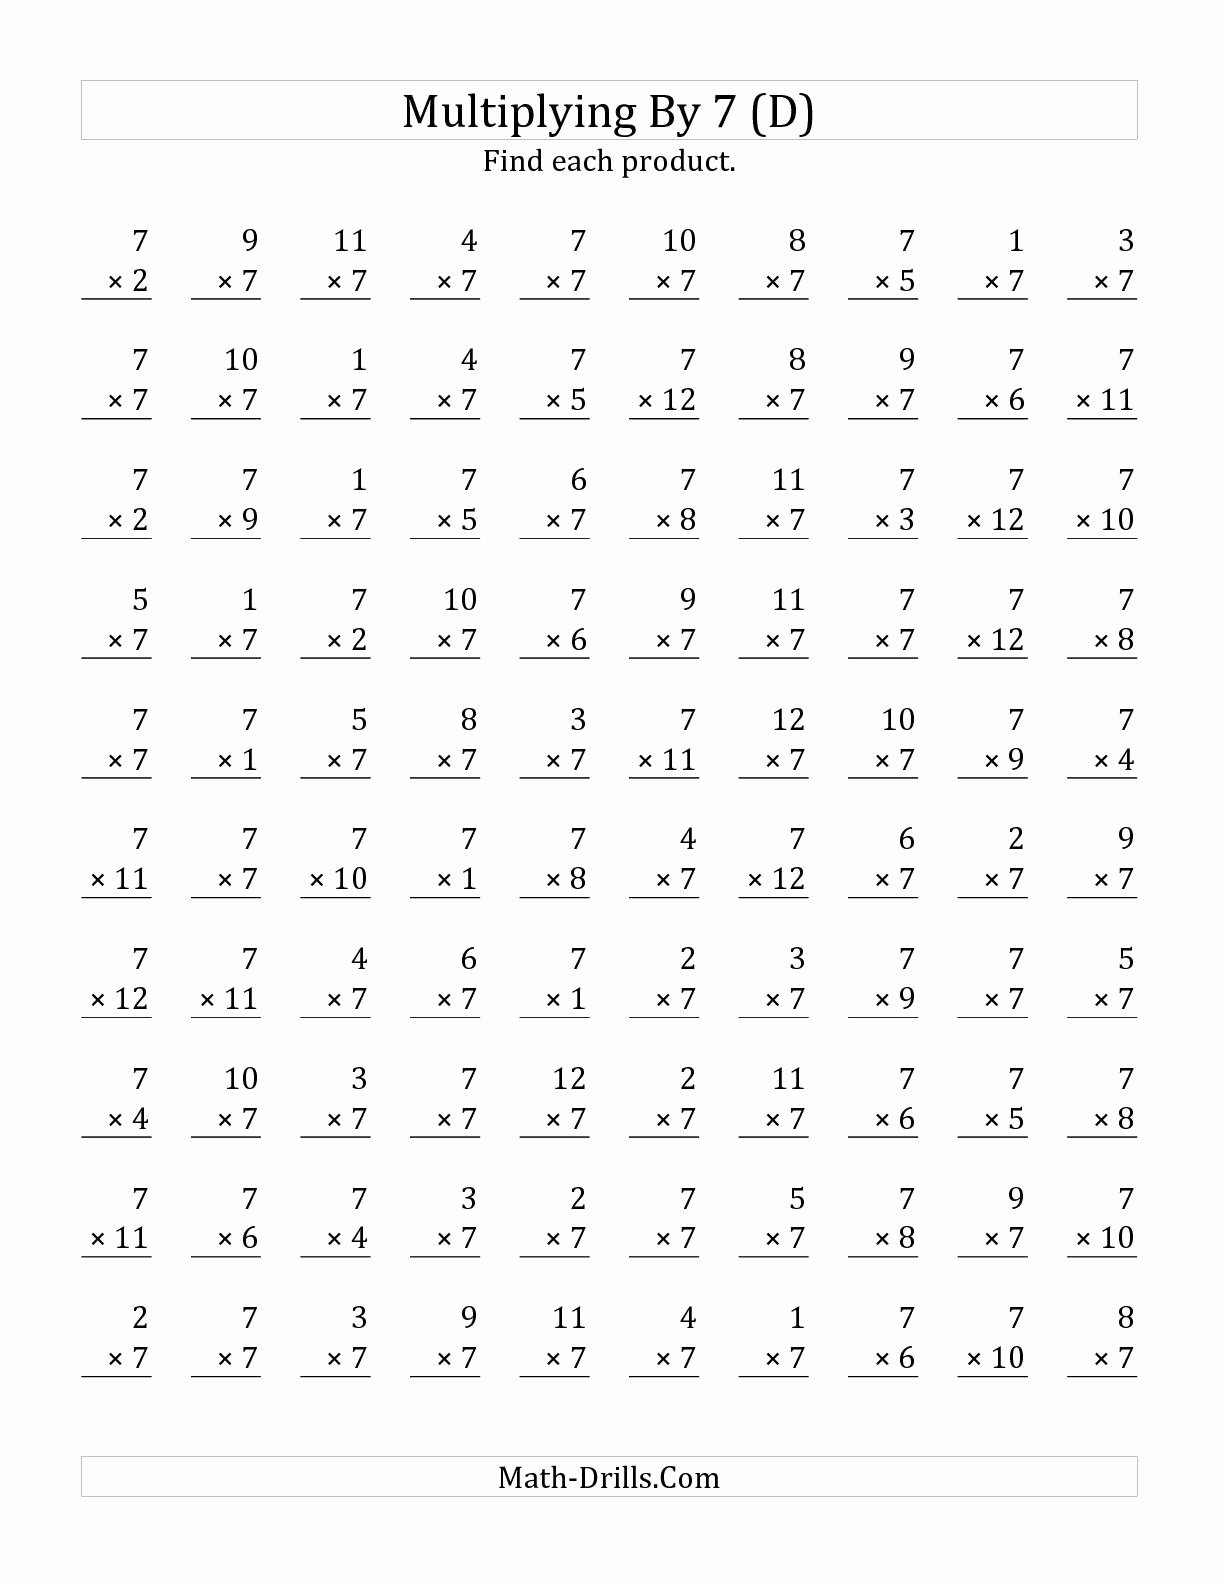 6 7 8 Multiplication Worksheets Inspirational the Multiplying 1 to 12 by 7 D Math Worksheet From the Mul